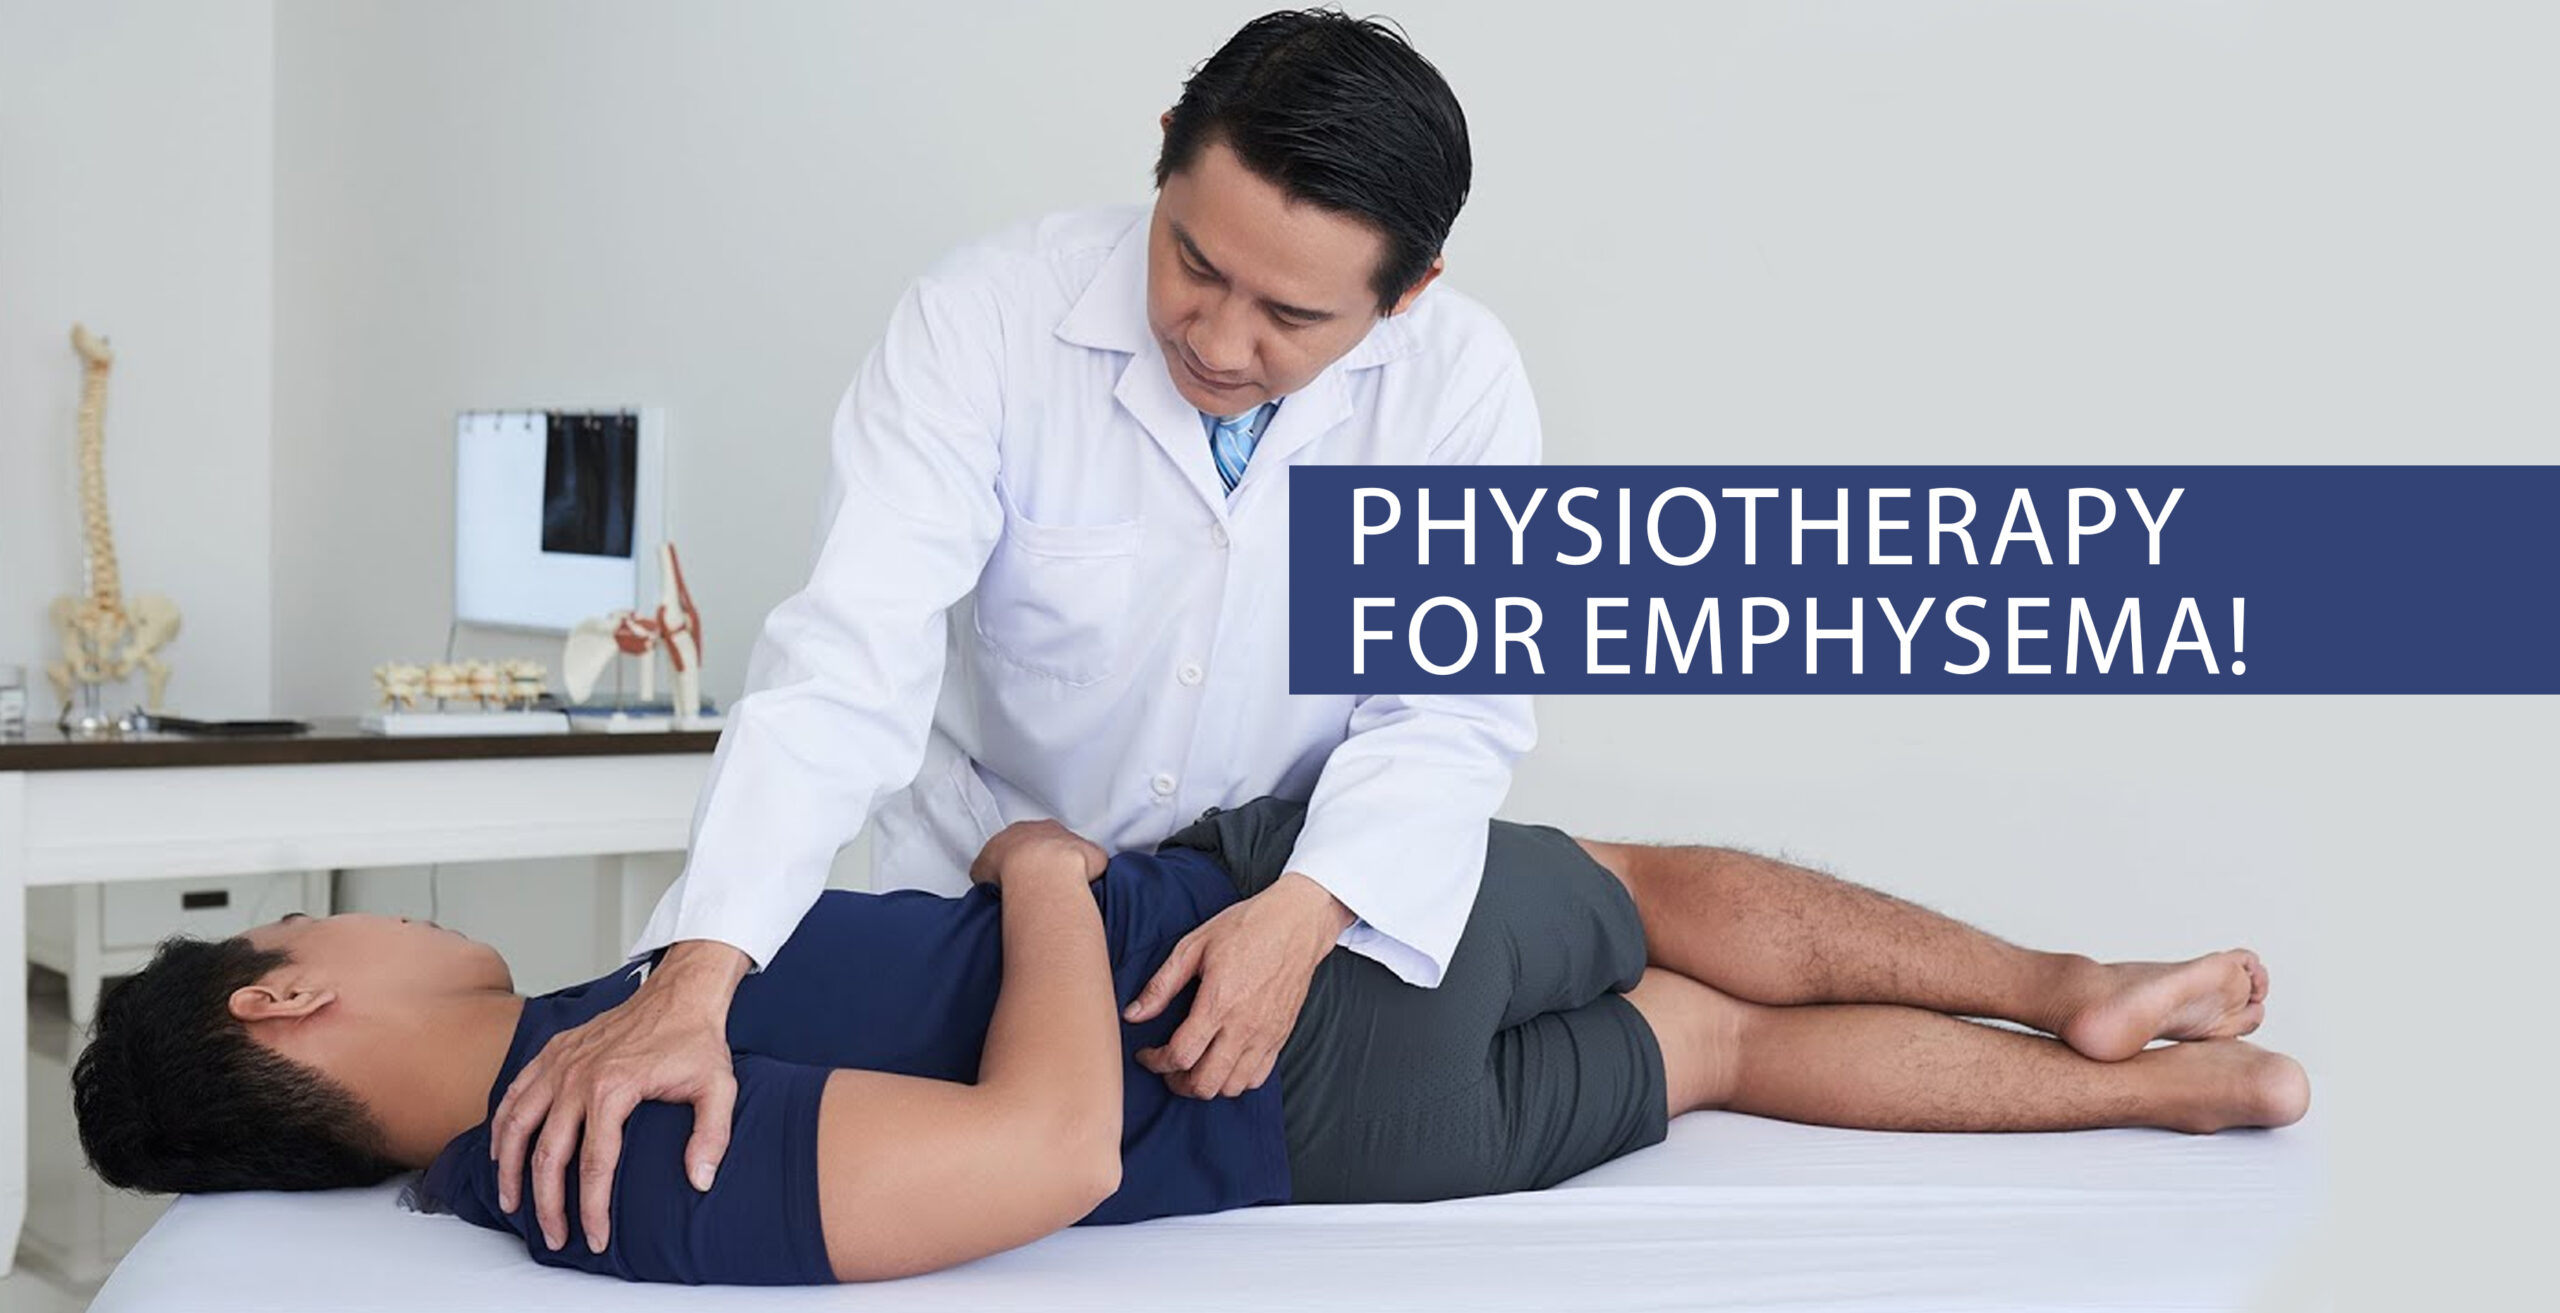 Physiotherapy for Emphysema